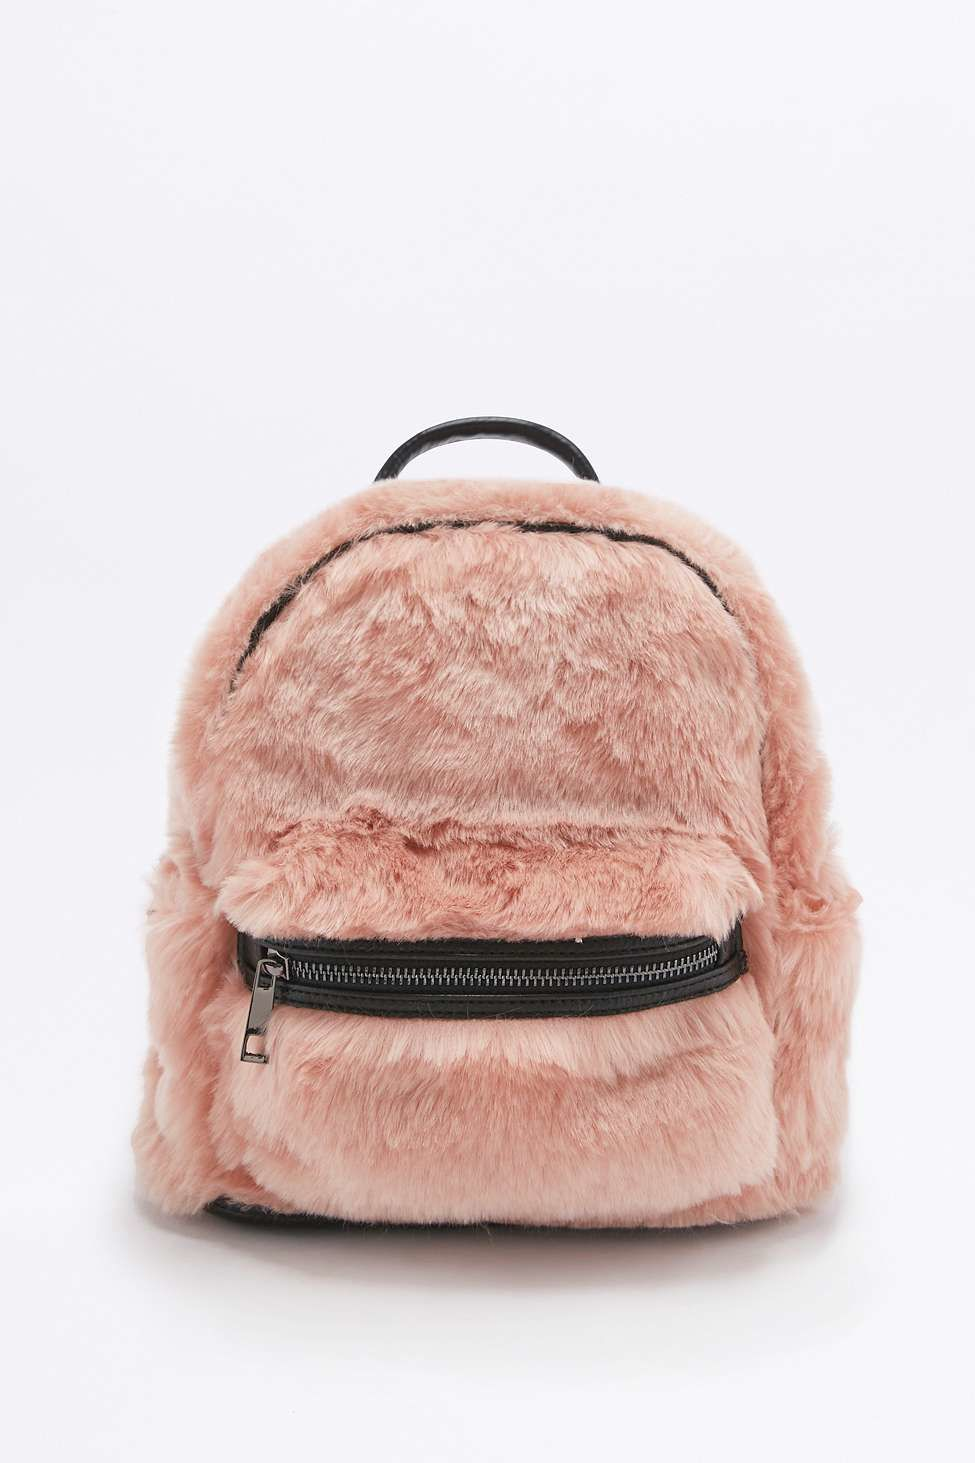 Urban Outfitters   Multicolor Faux-fur Mini Backpack   Lyst   BAGS ... 15feb0263c